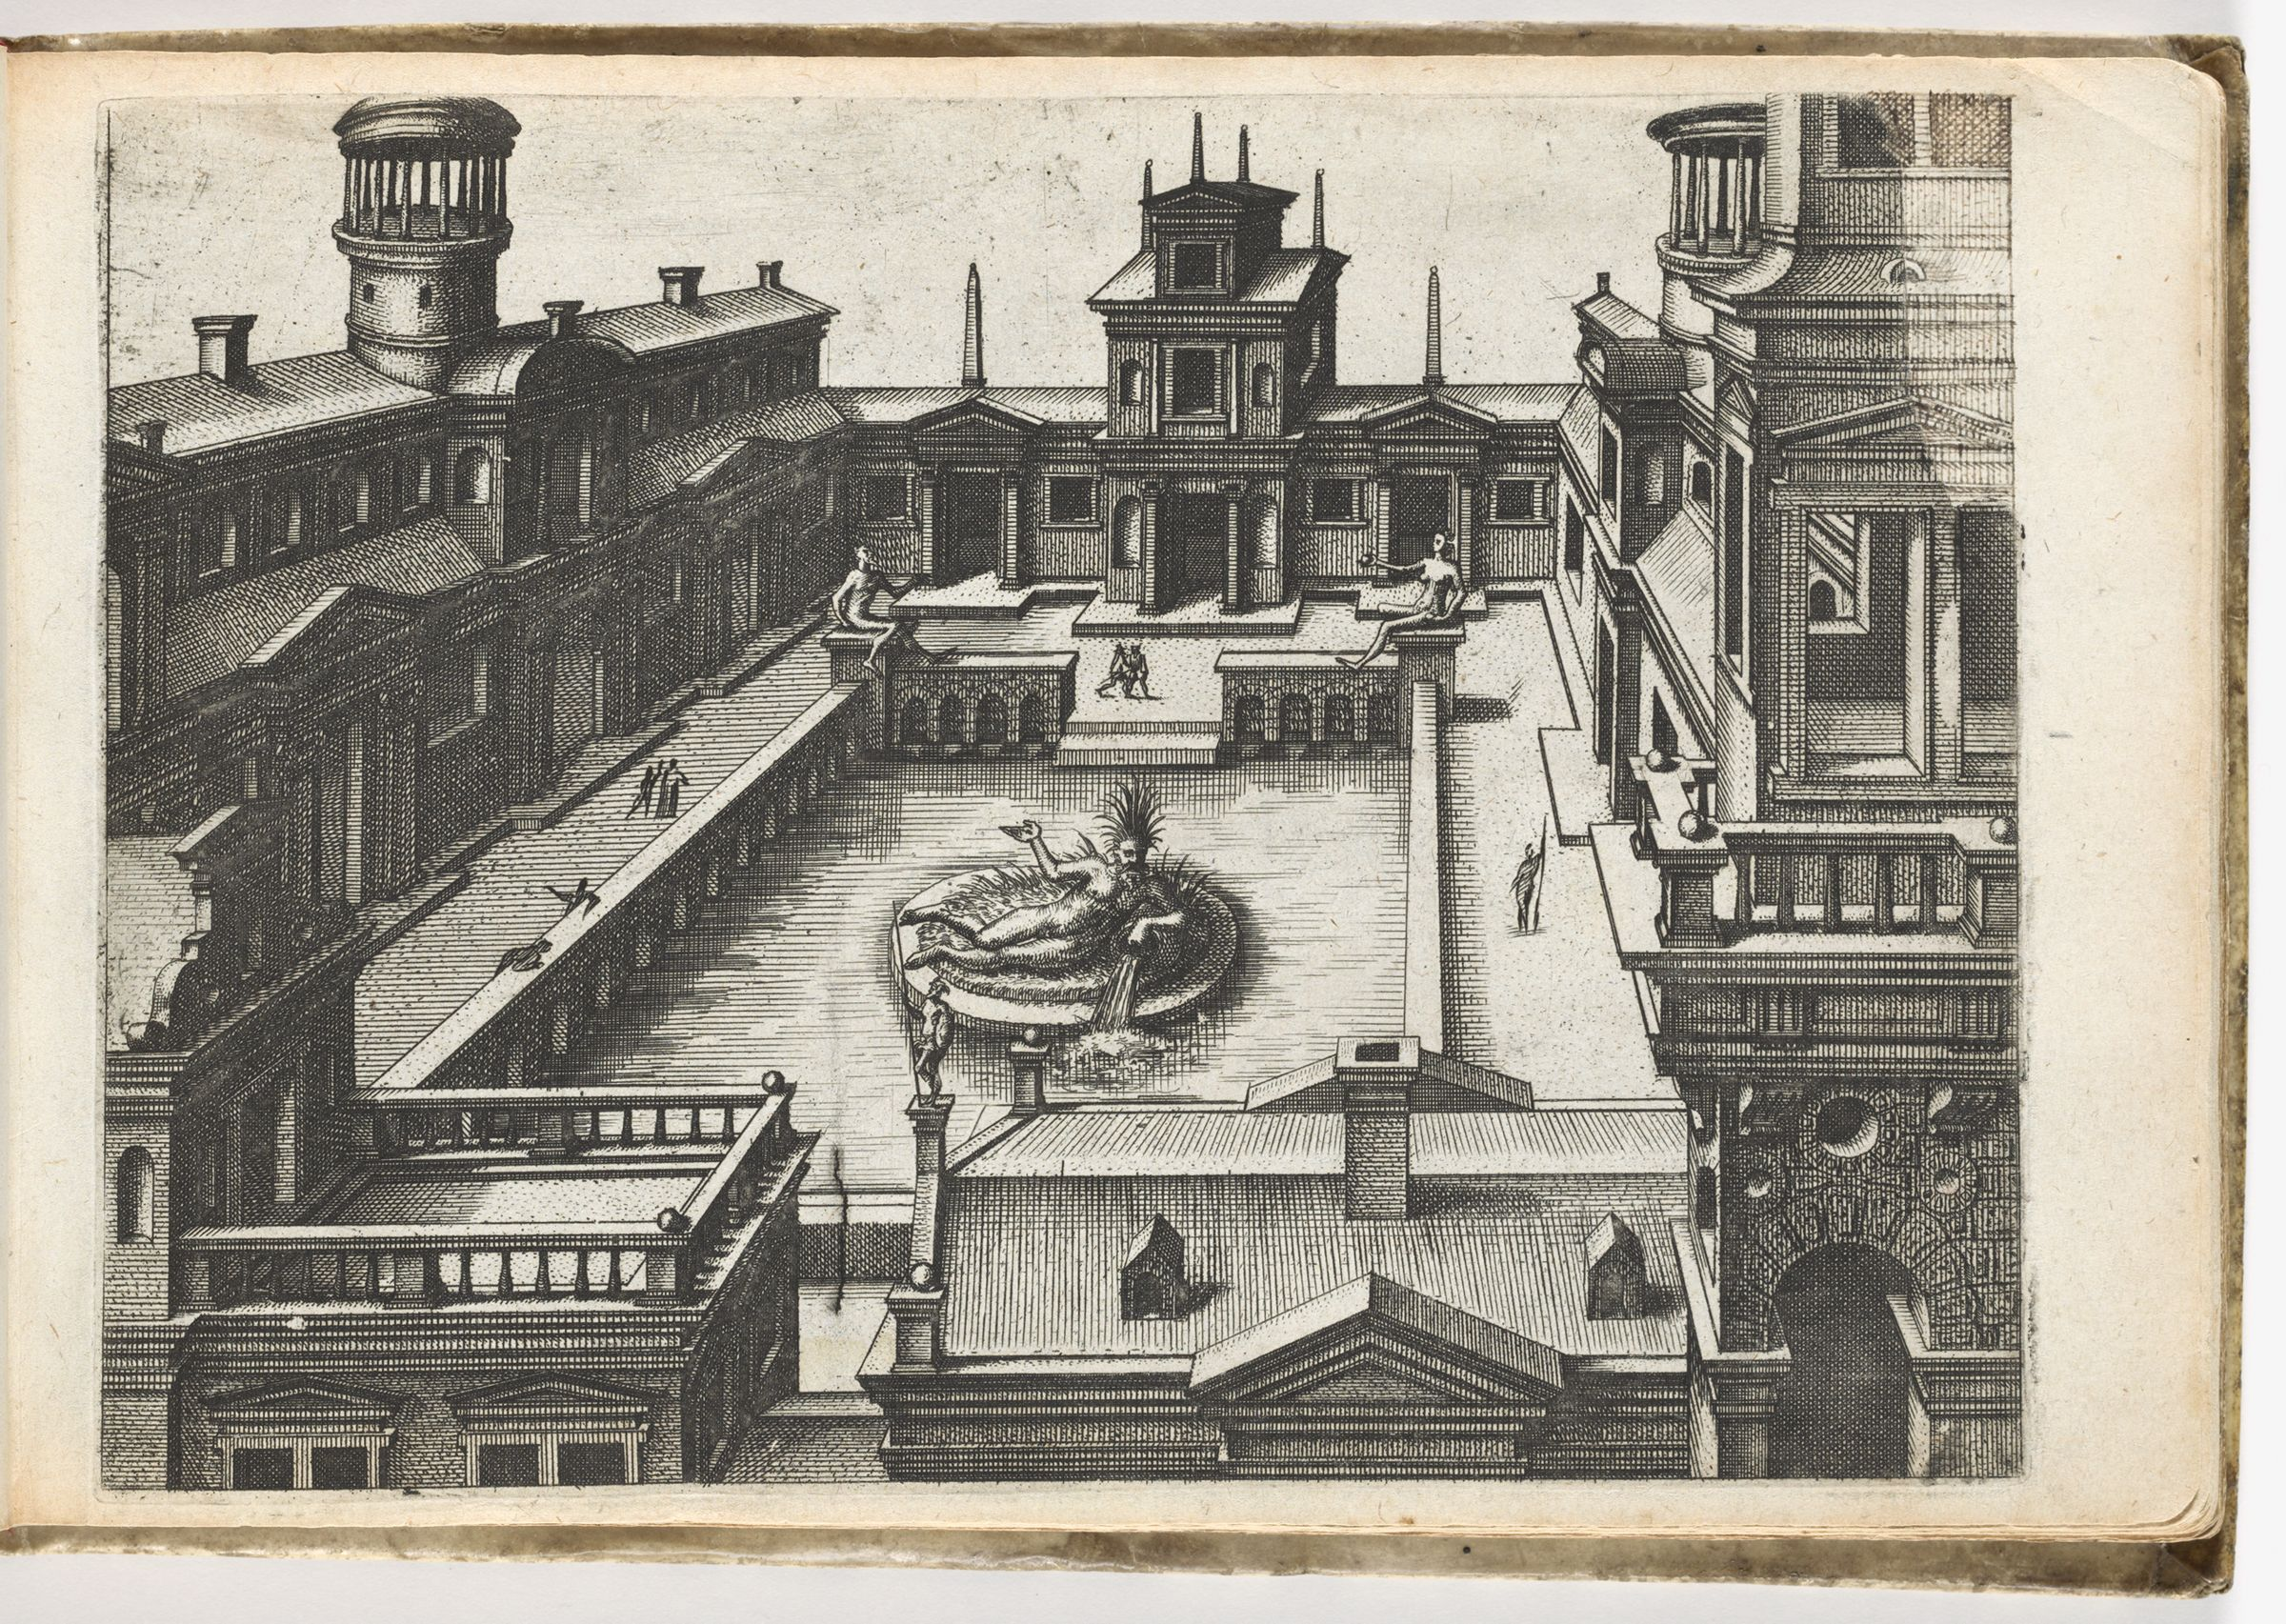 View Into The Courtyard Of A Palace With A Rivergod In The Center Of A Rectangular Pond (N.h.)